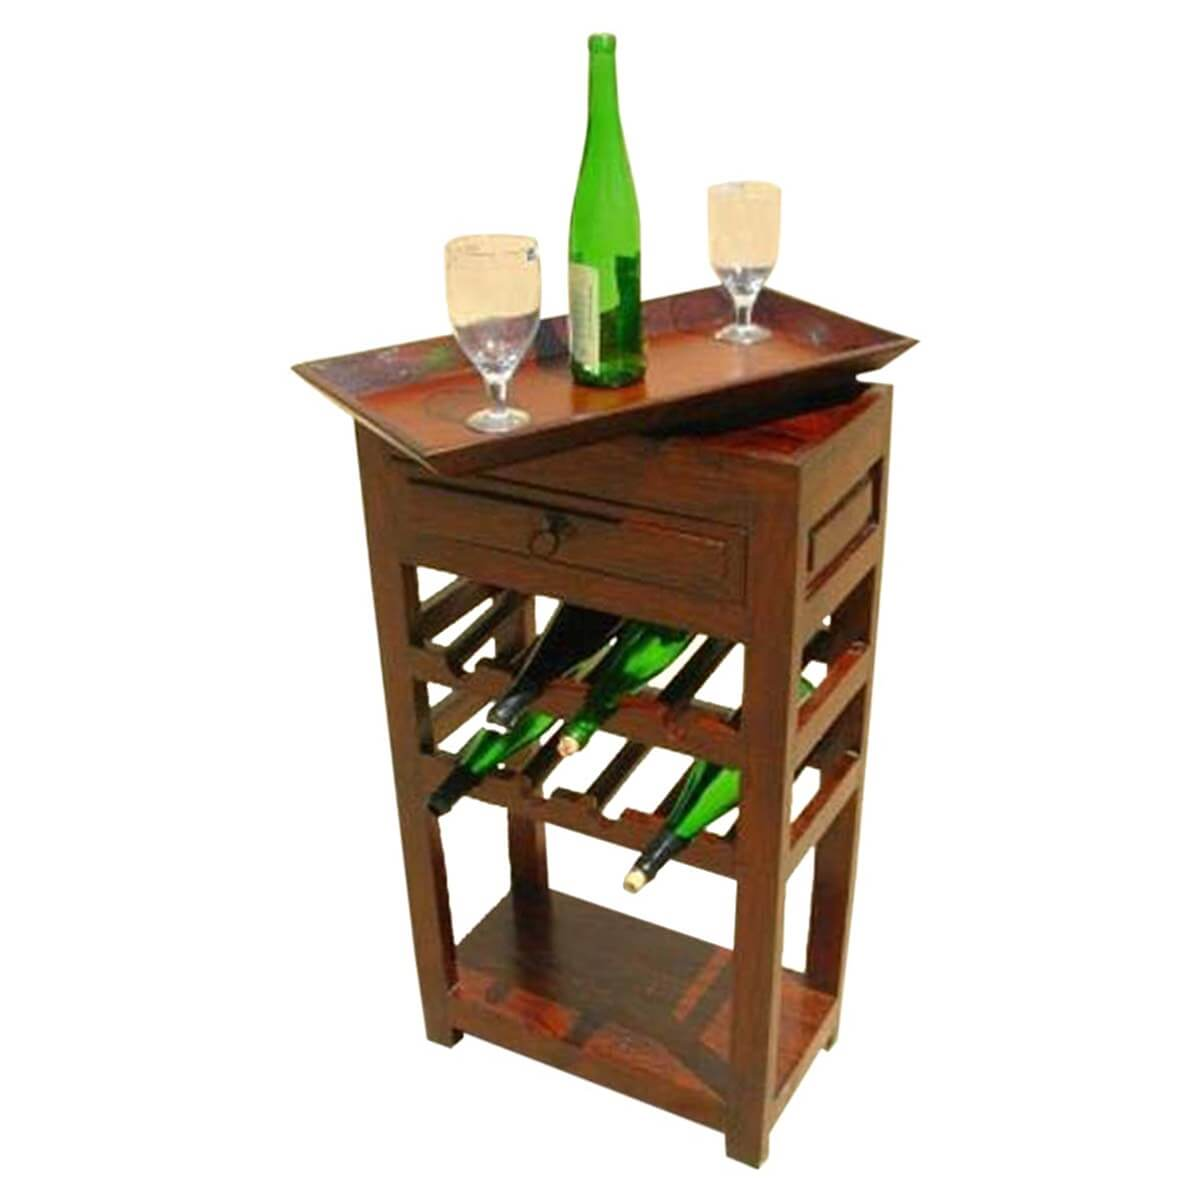 Superb Solid Wood Liquor Bottle Storage Wine Rack Serving Tray